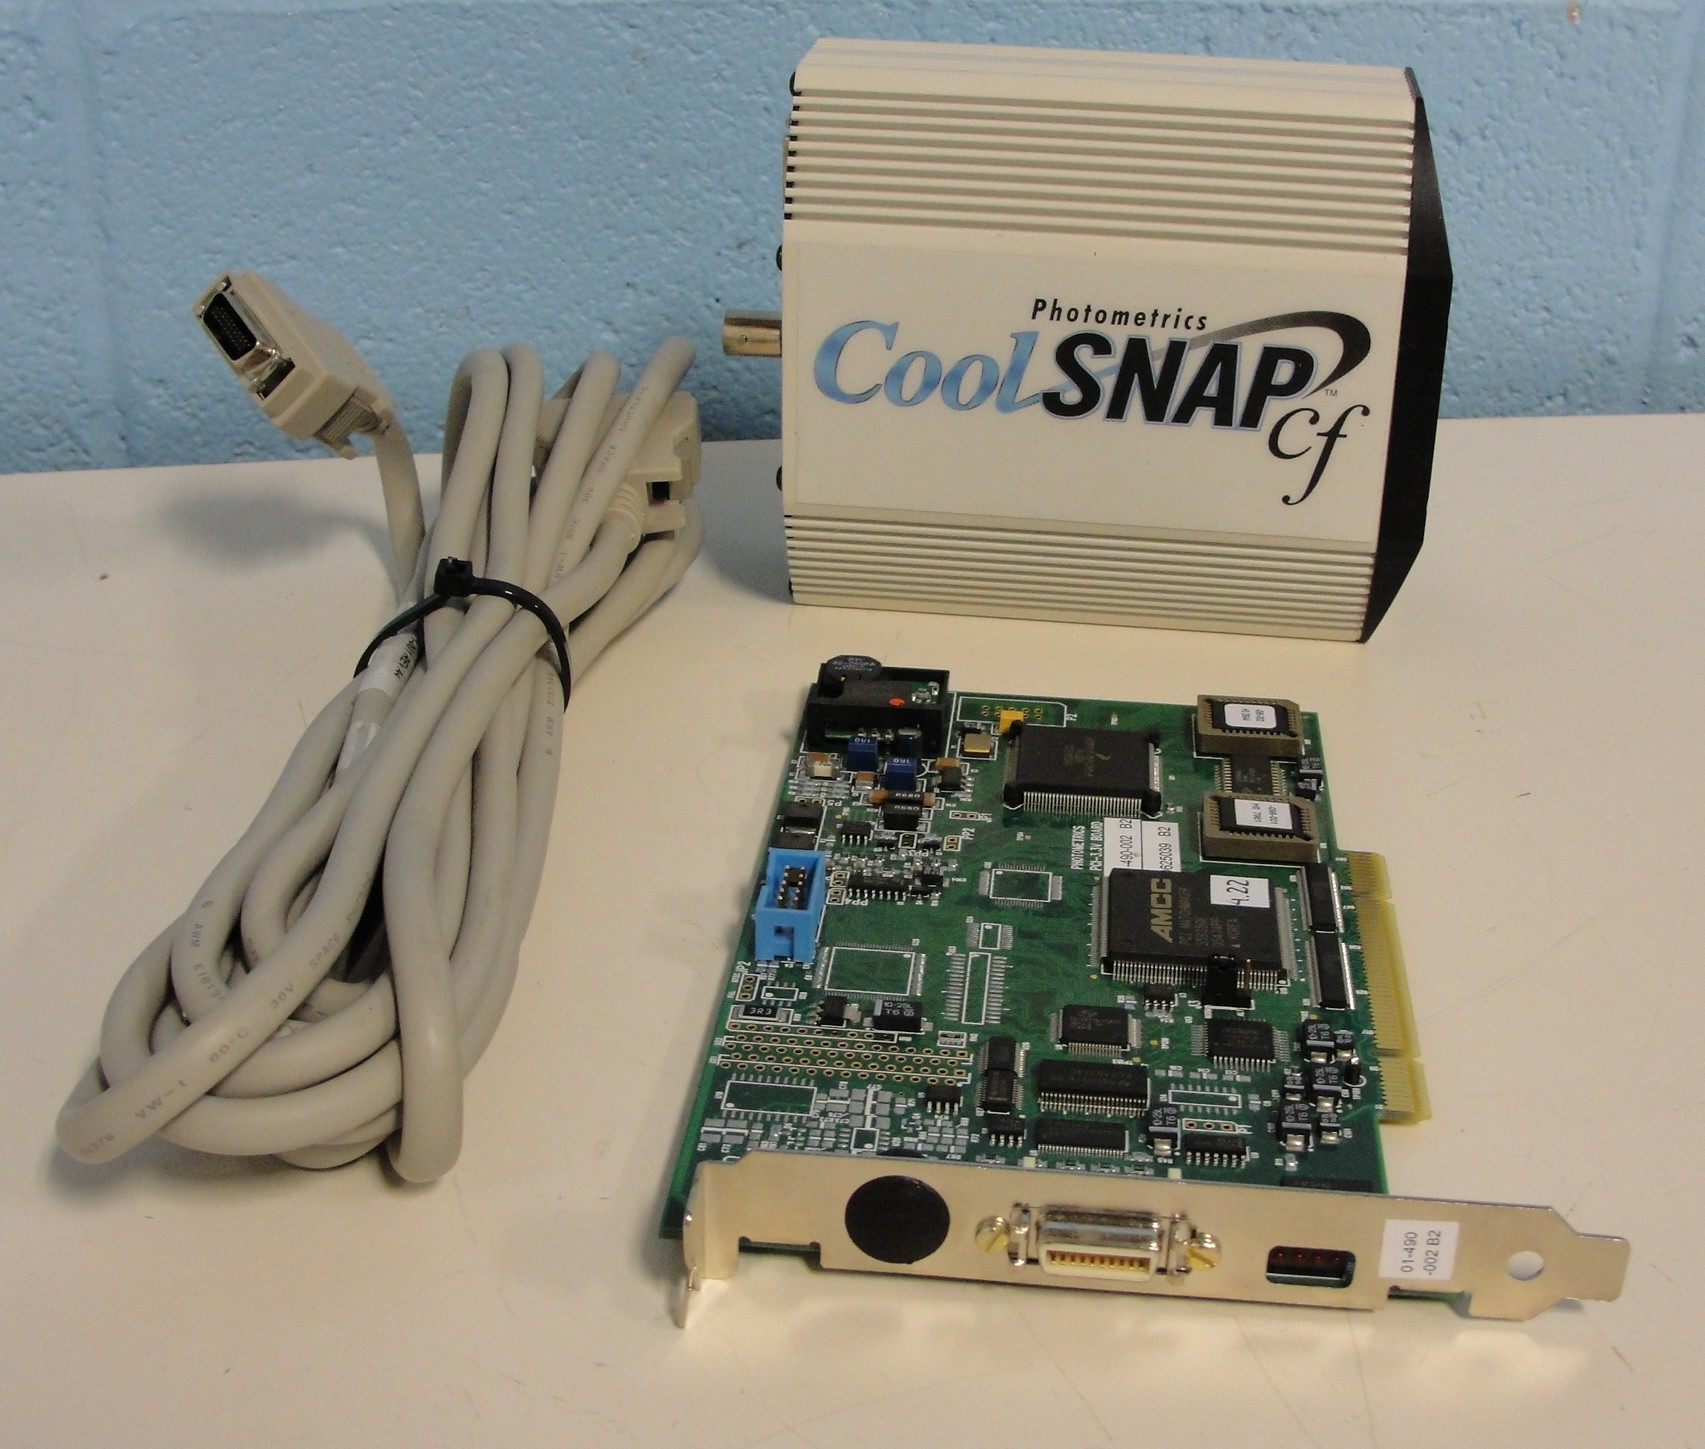 Photometrics CoolSNAP cf High-Resolution Interline CCD Camera Image